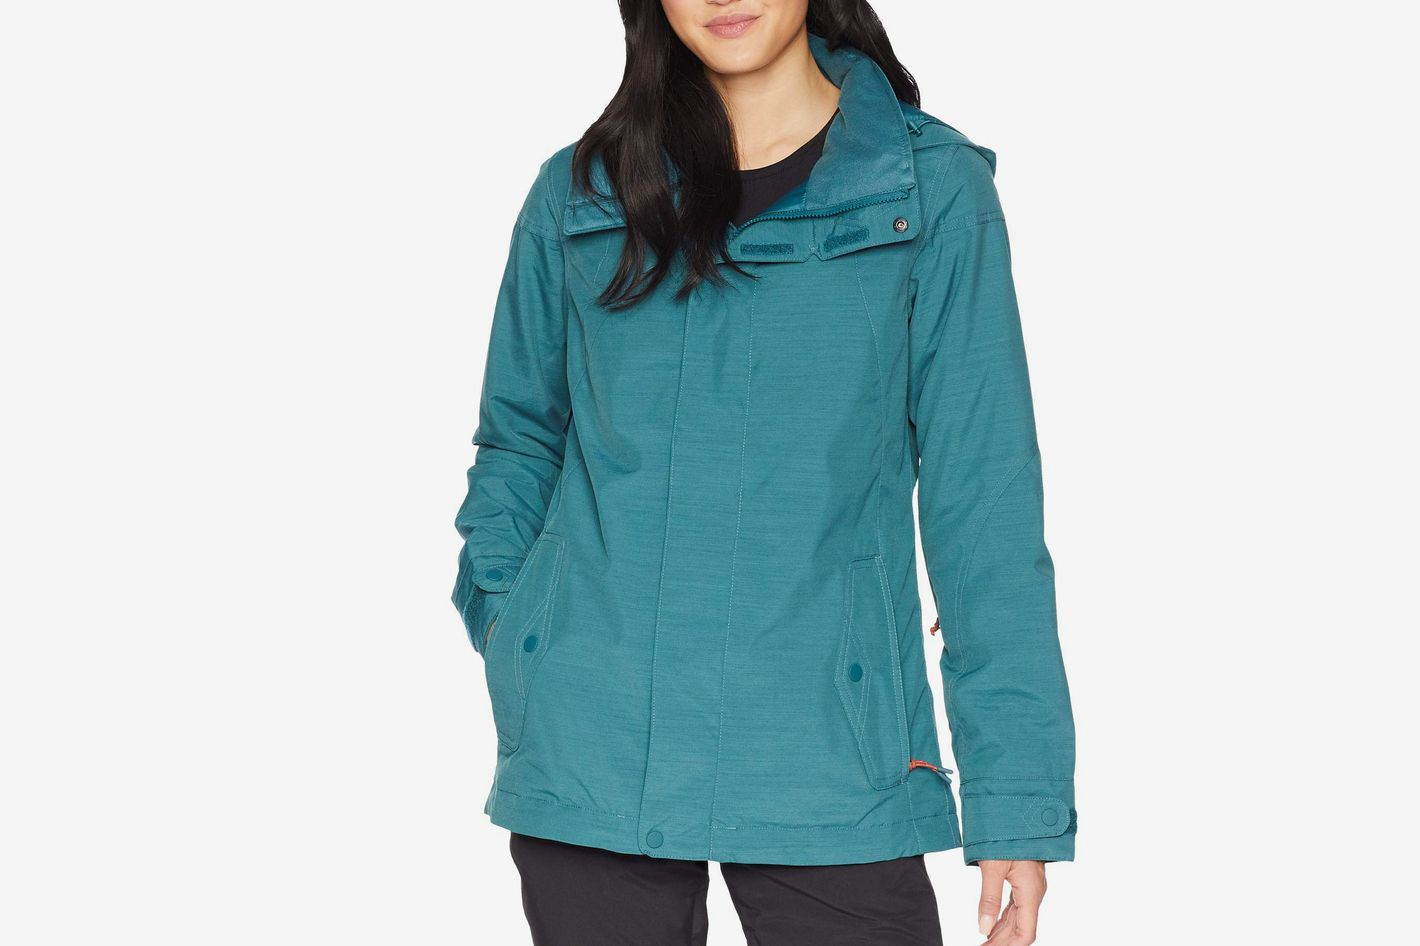 Burton Jet Set Jacket (Women's)